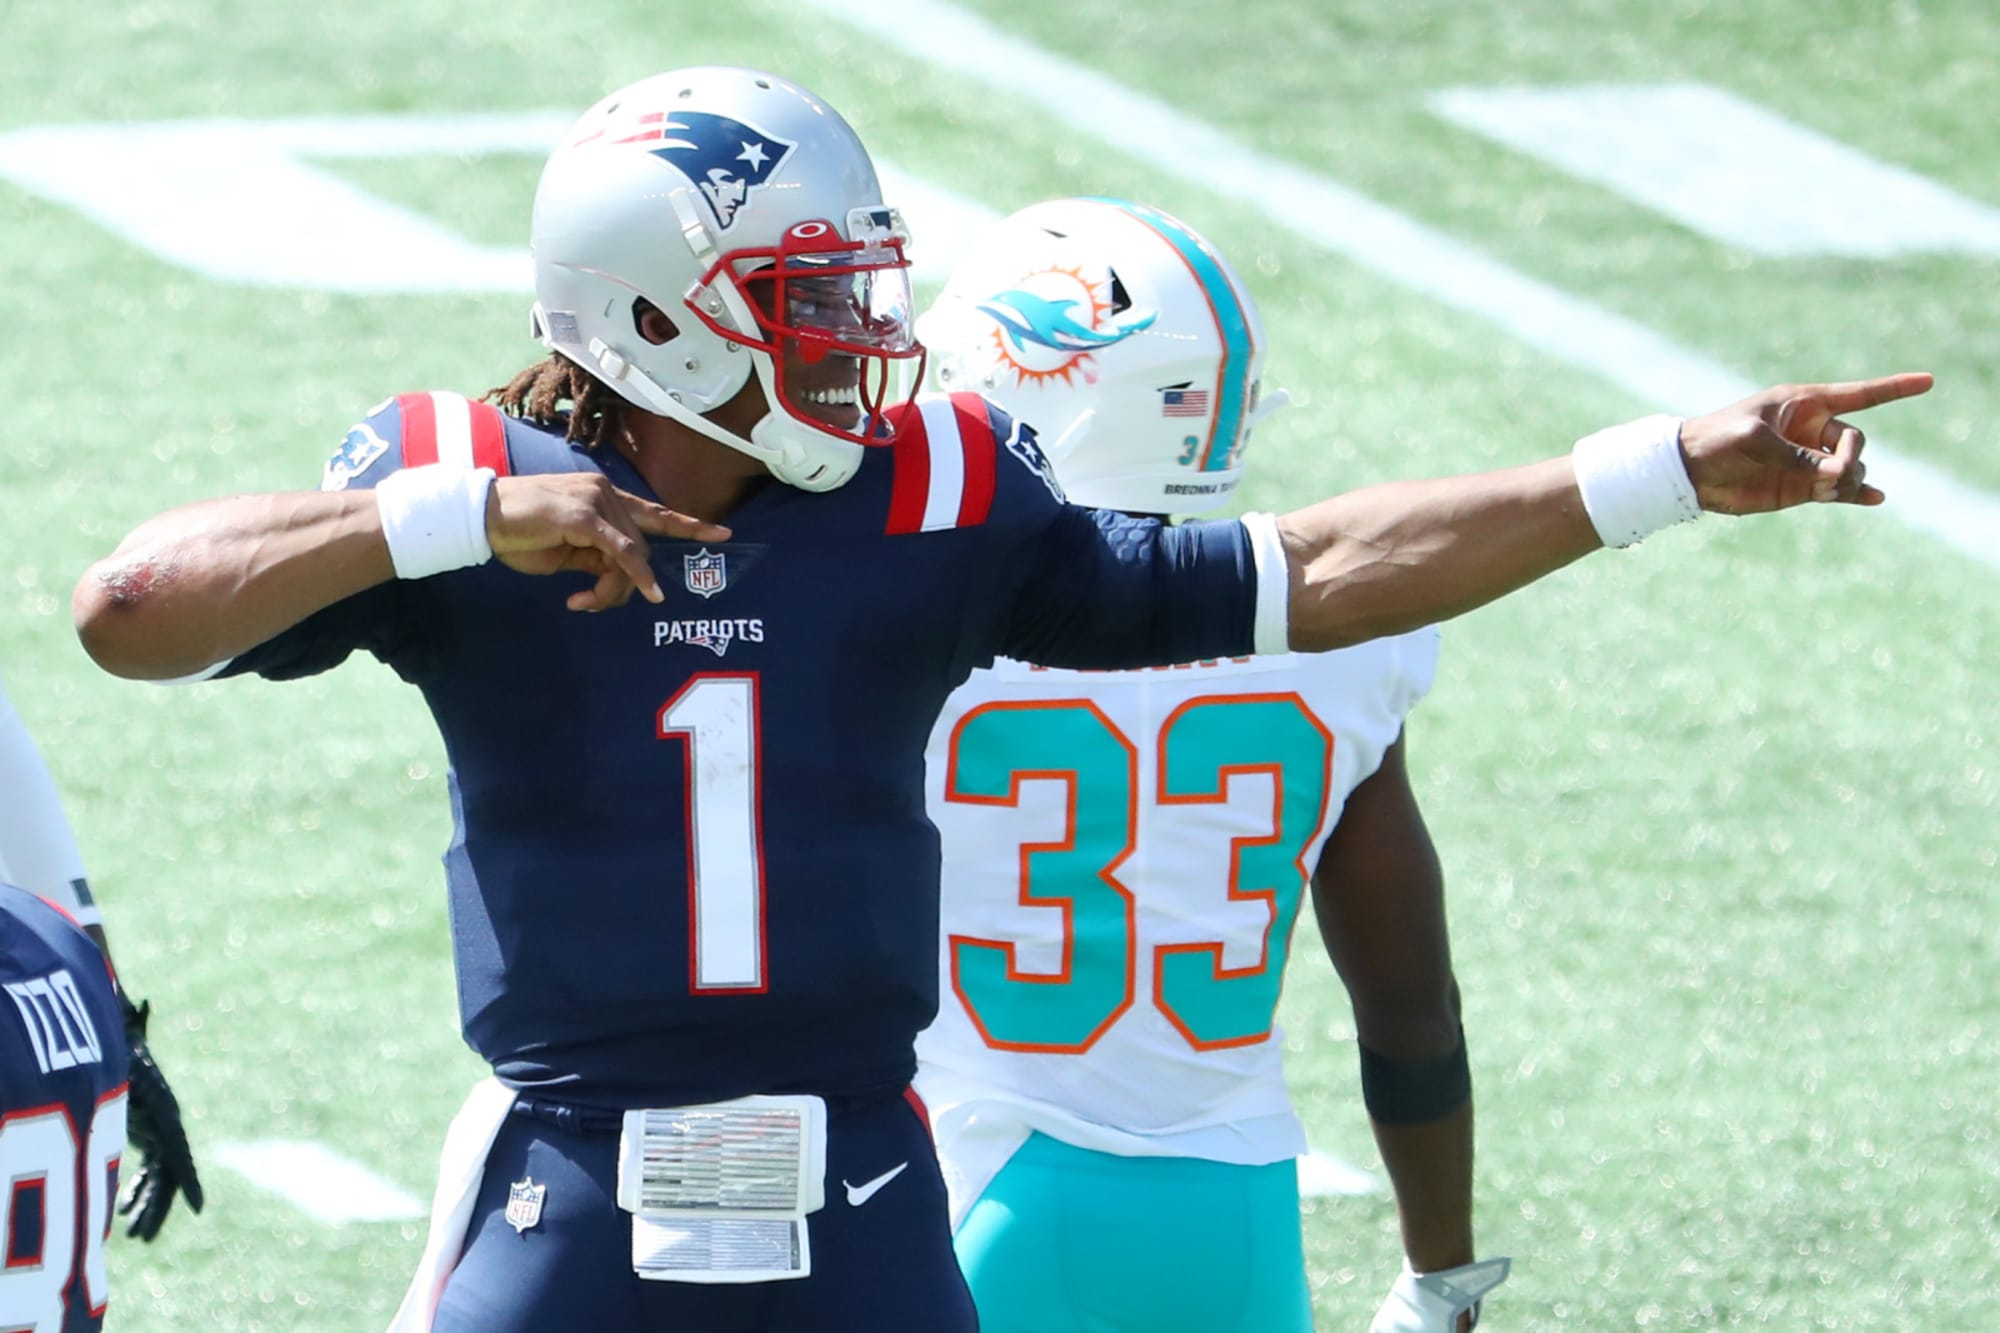 Patriots Vs Dolphins Nfl Week 14 Game Highlights Youtube